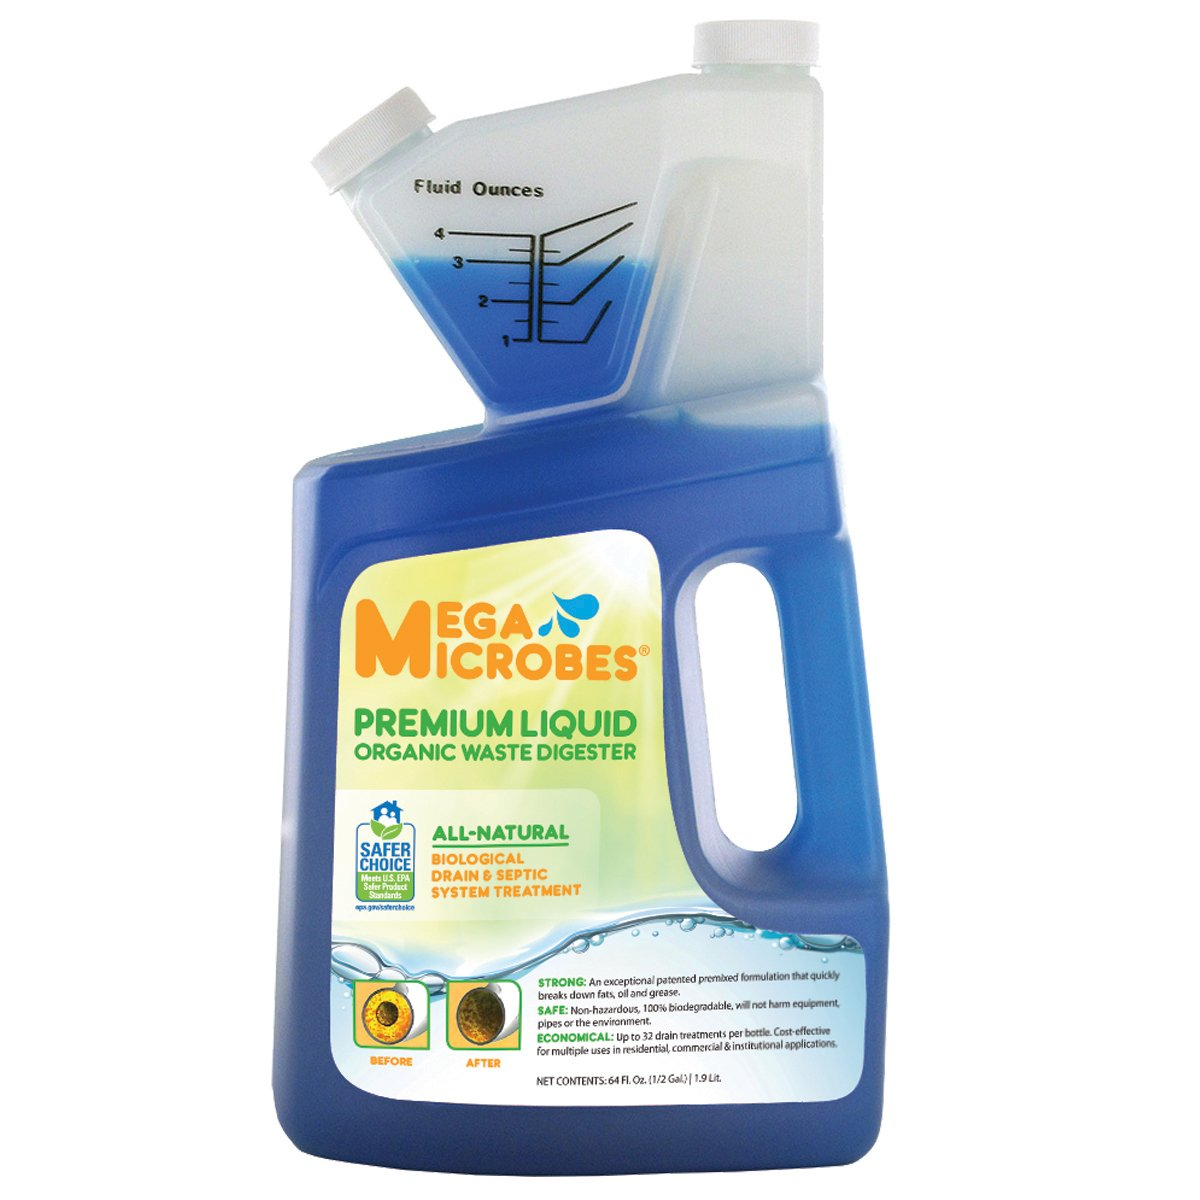 MegaMicrobes Liquid 64-Ounce Case of 6 by MegaMicrobes (Image #2)